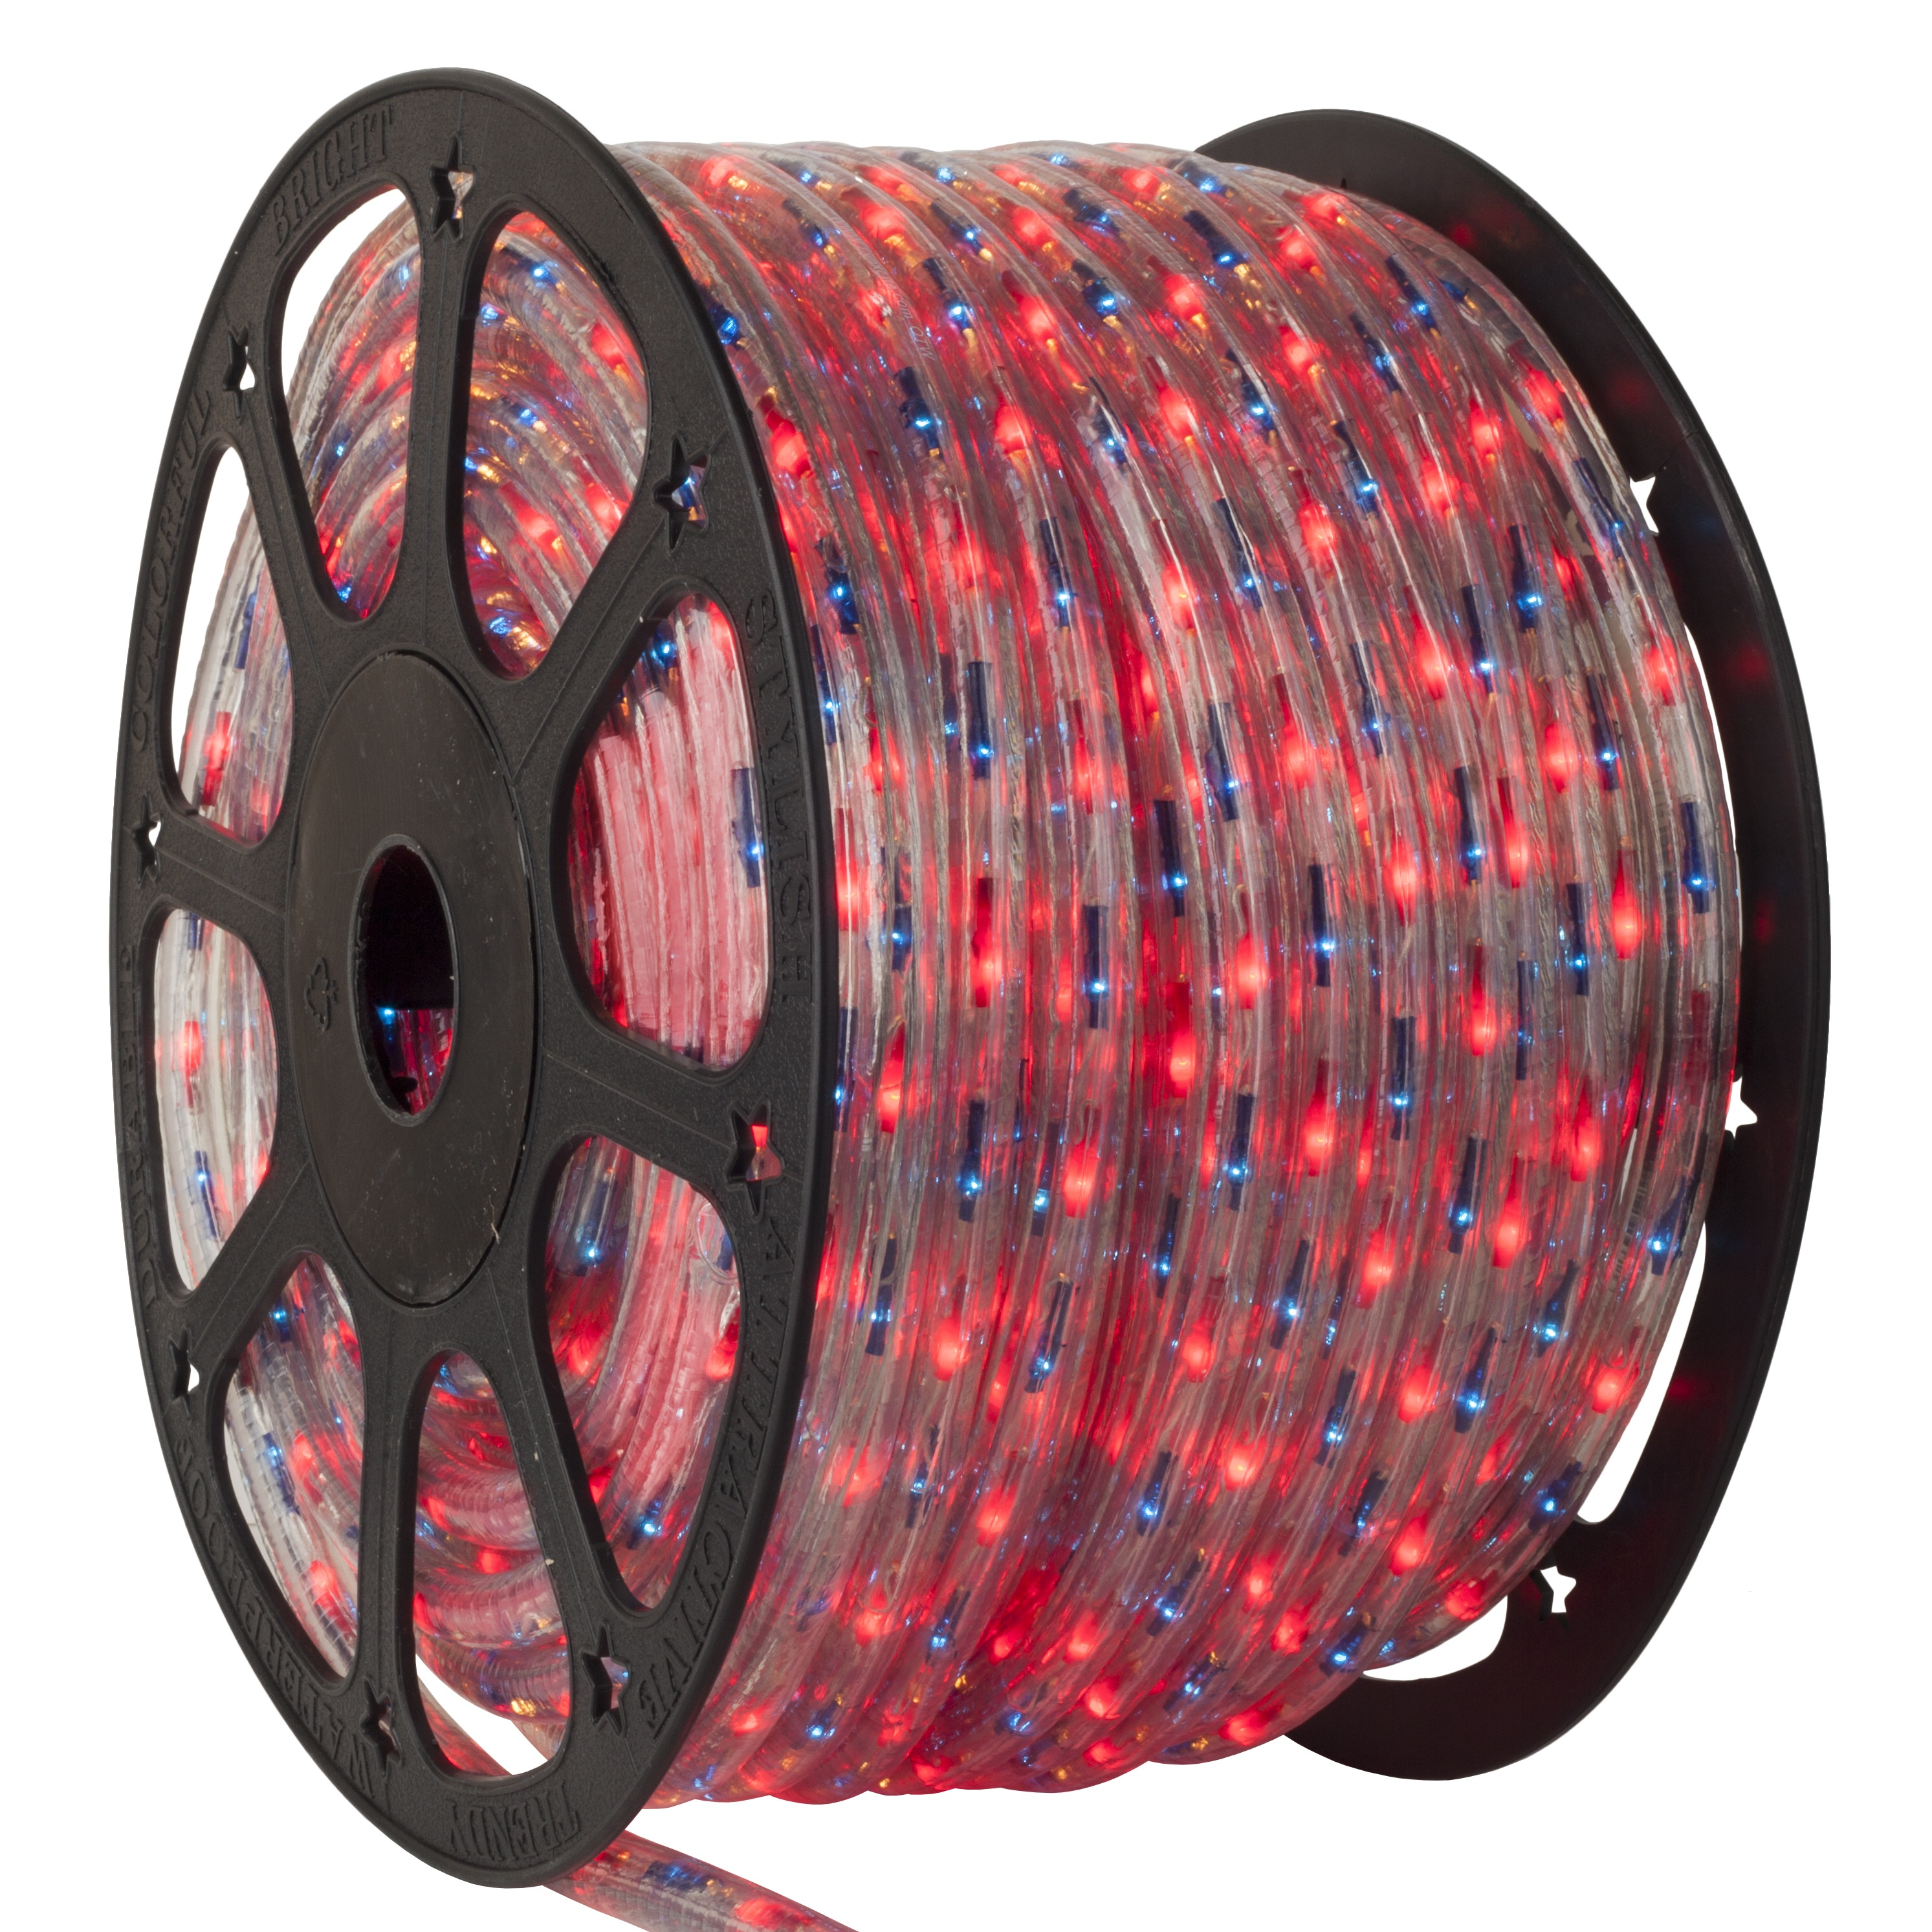 Multicolor Led Strip Rope Light - 150' Red, Blue Chasing Rope Light Commercial